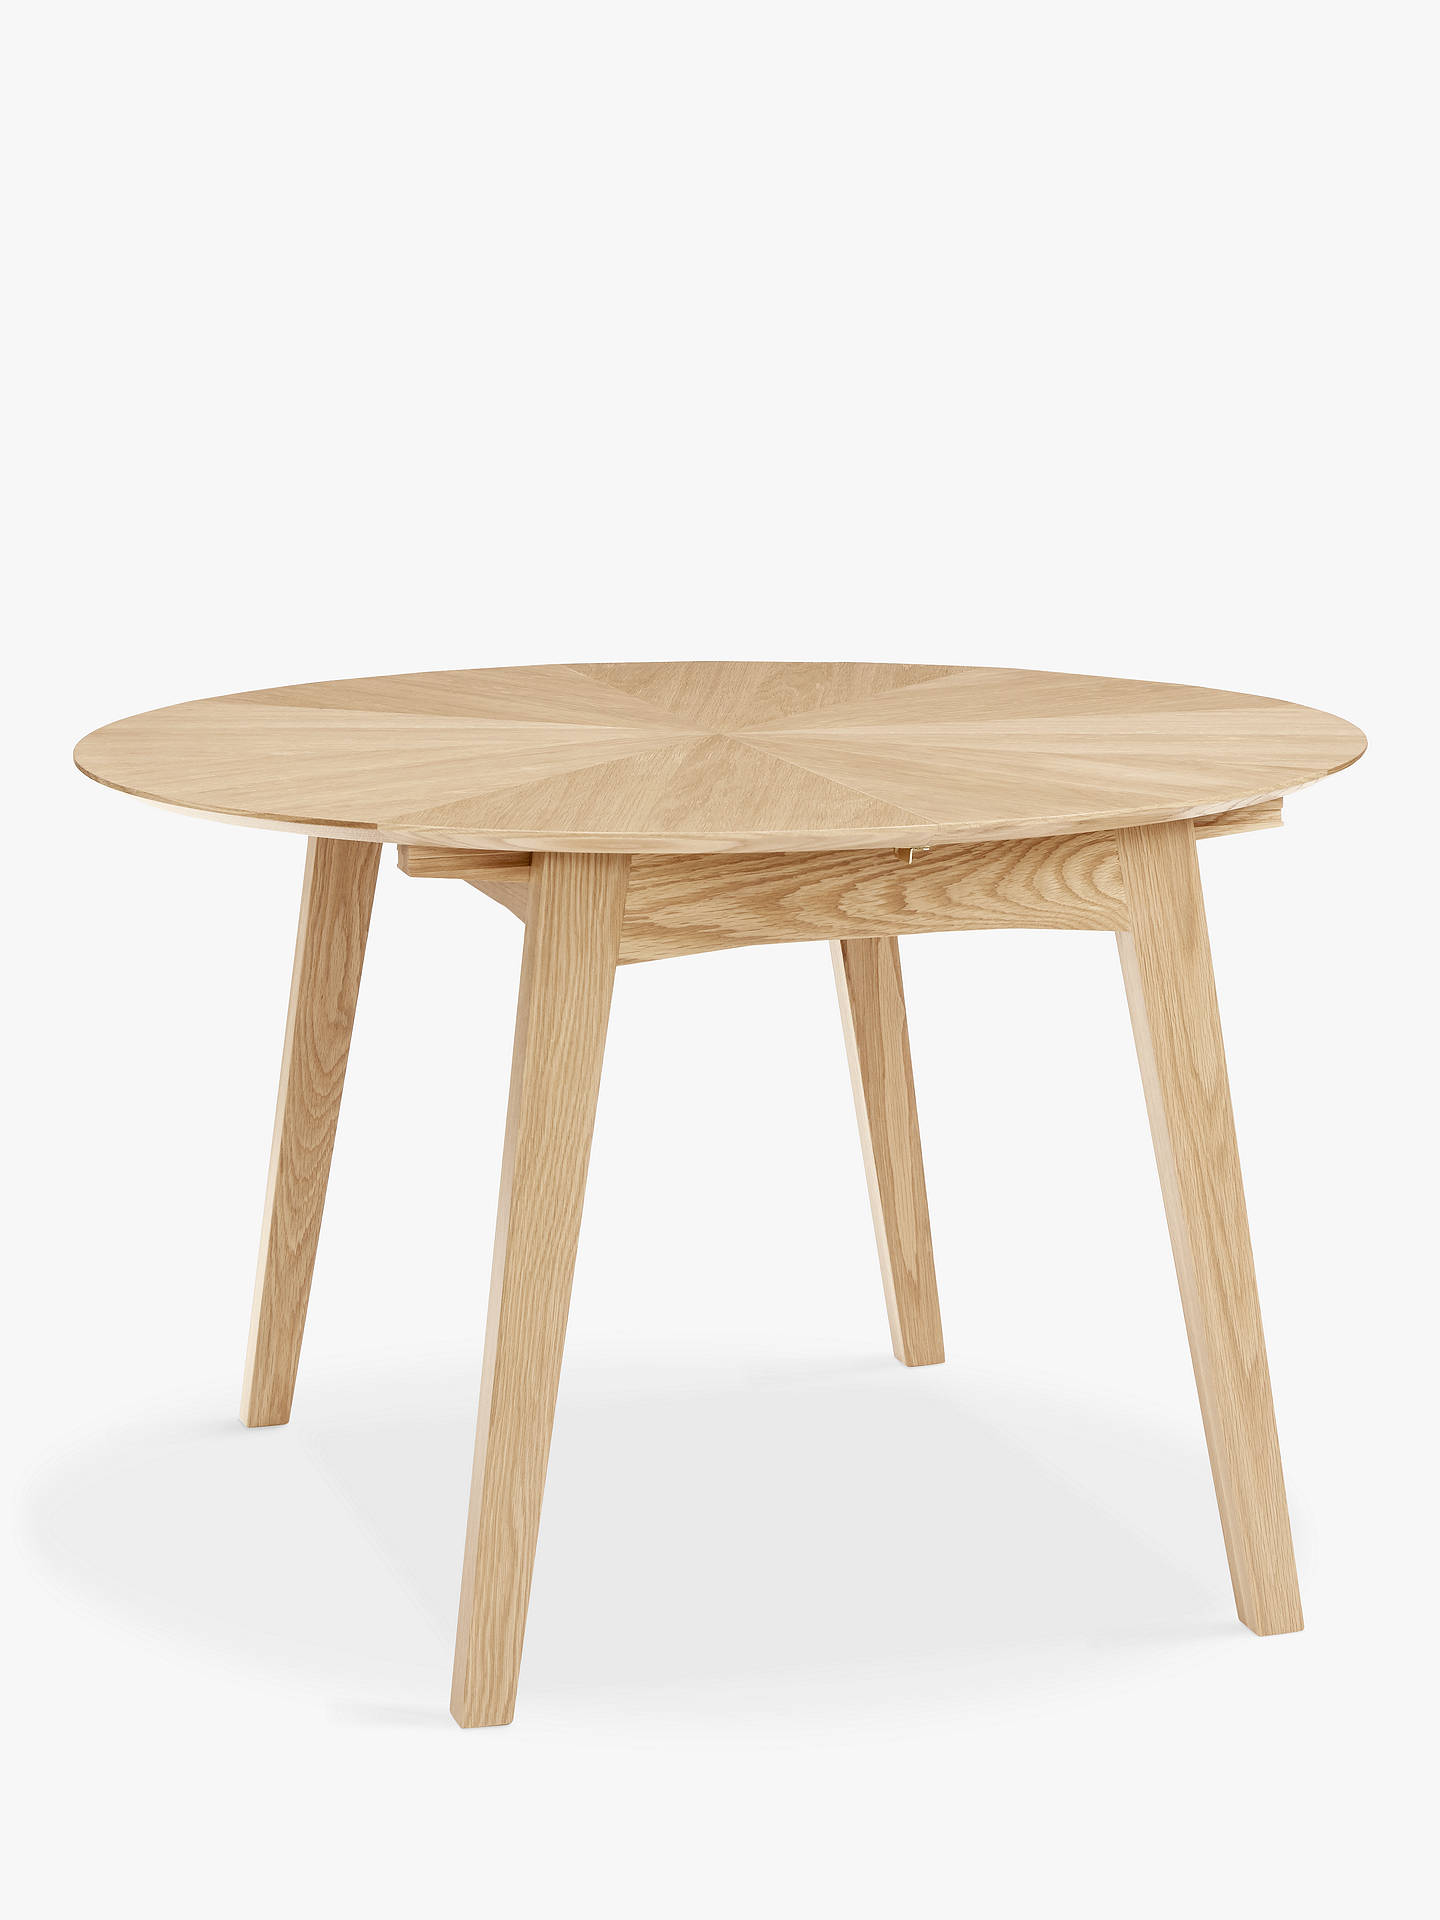 John Lewis Partners Duhrer 4 6 Seater Extending Round Dining Table Online At Johnlewis